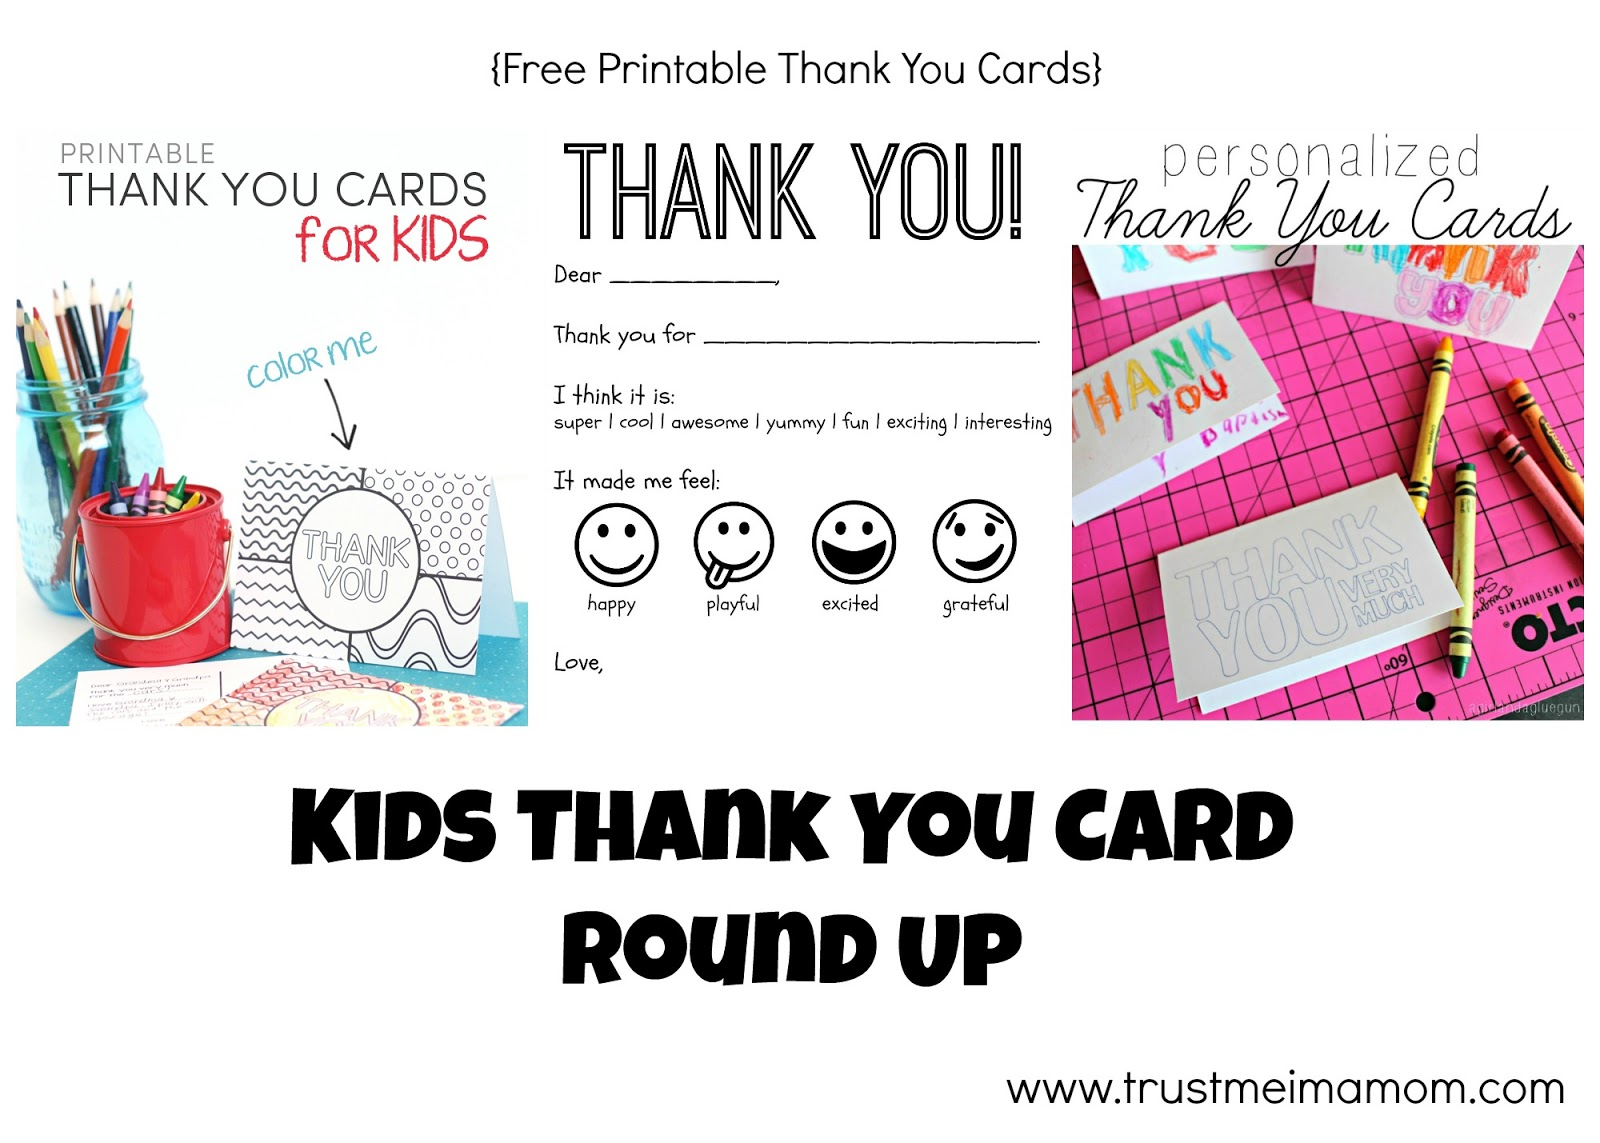 This is a graphic of Universal Free Printable Thank You Cards for Kids